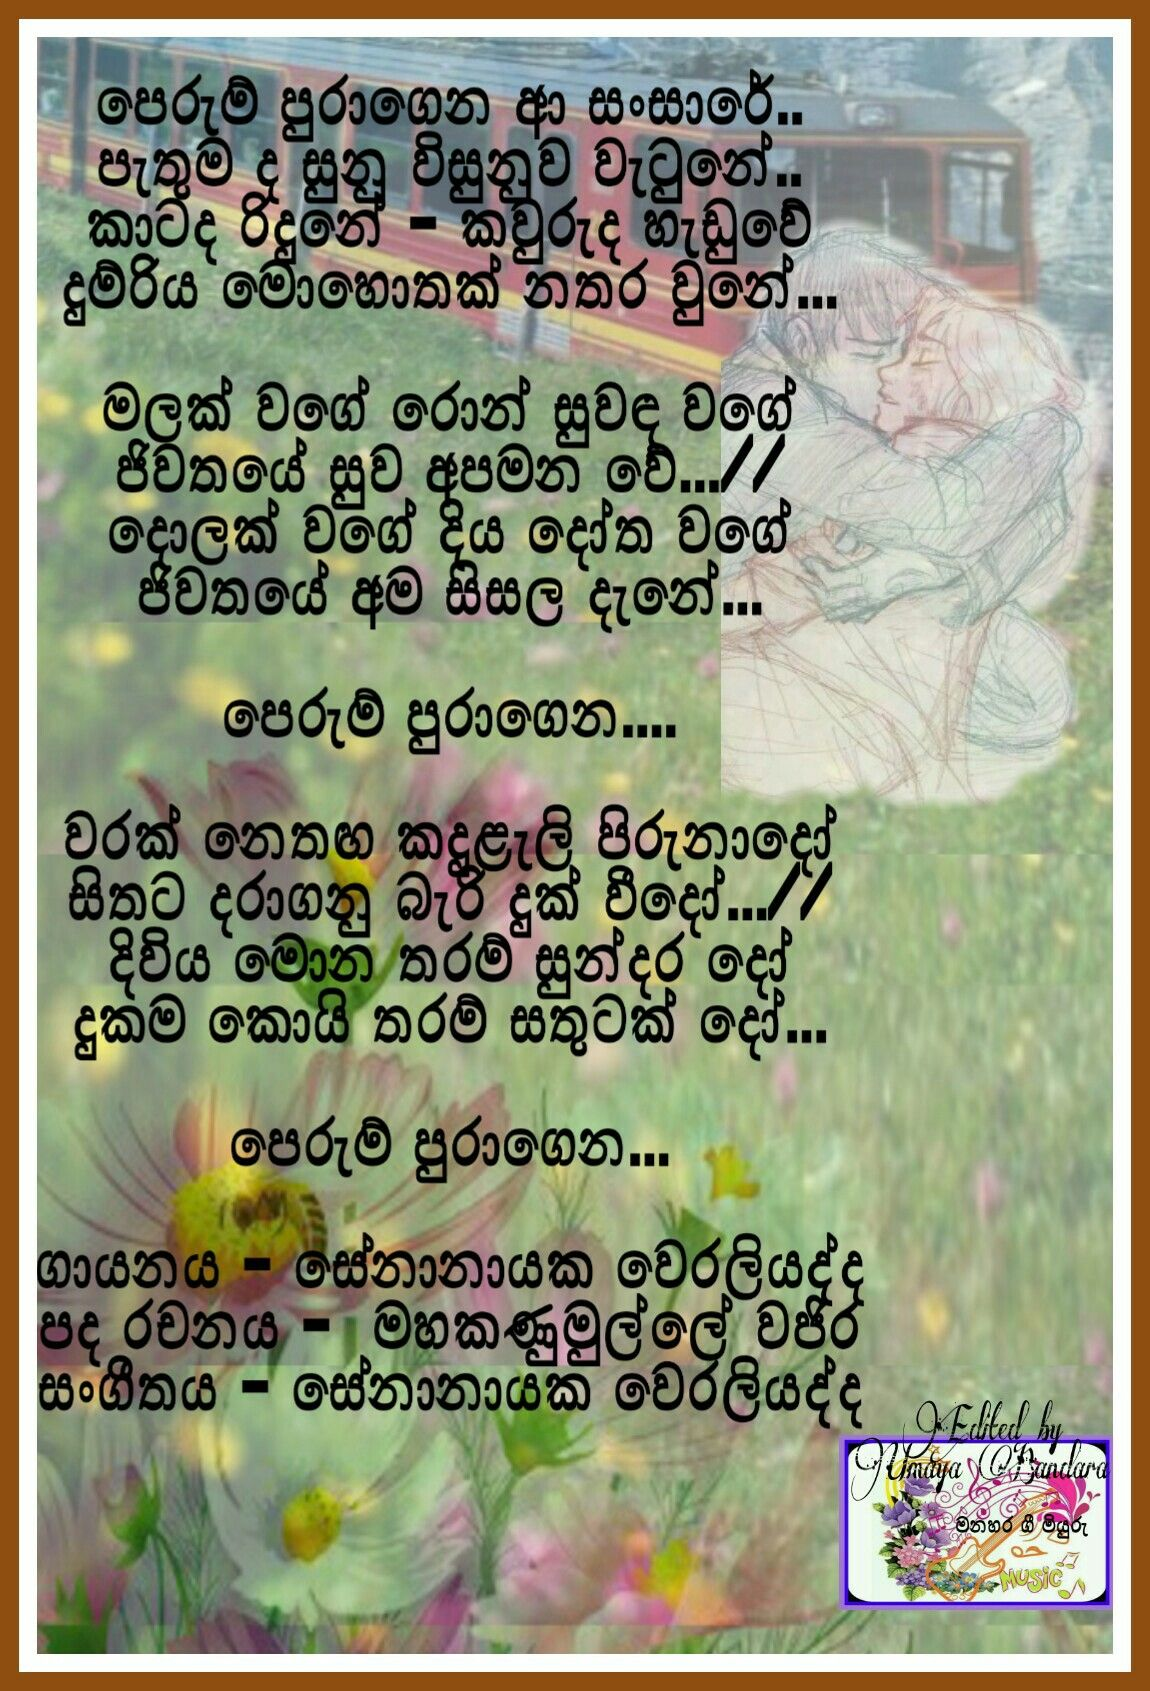 Artist Senanayake Weraliyadda Sinhala Song Lyrics Song Lyrics Songs Lyrics